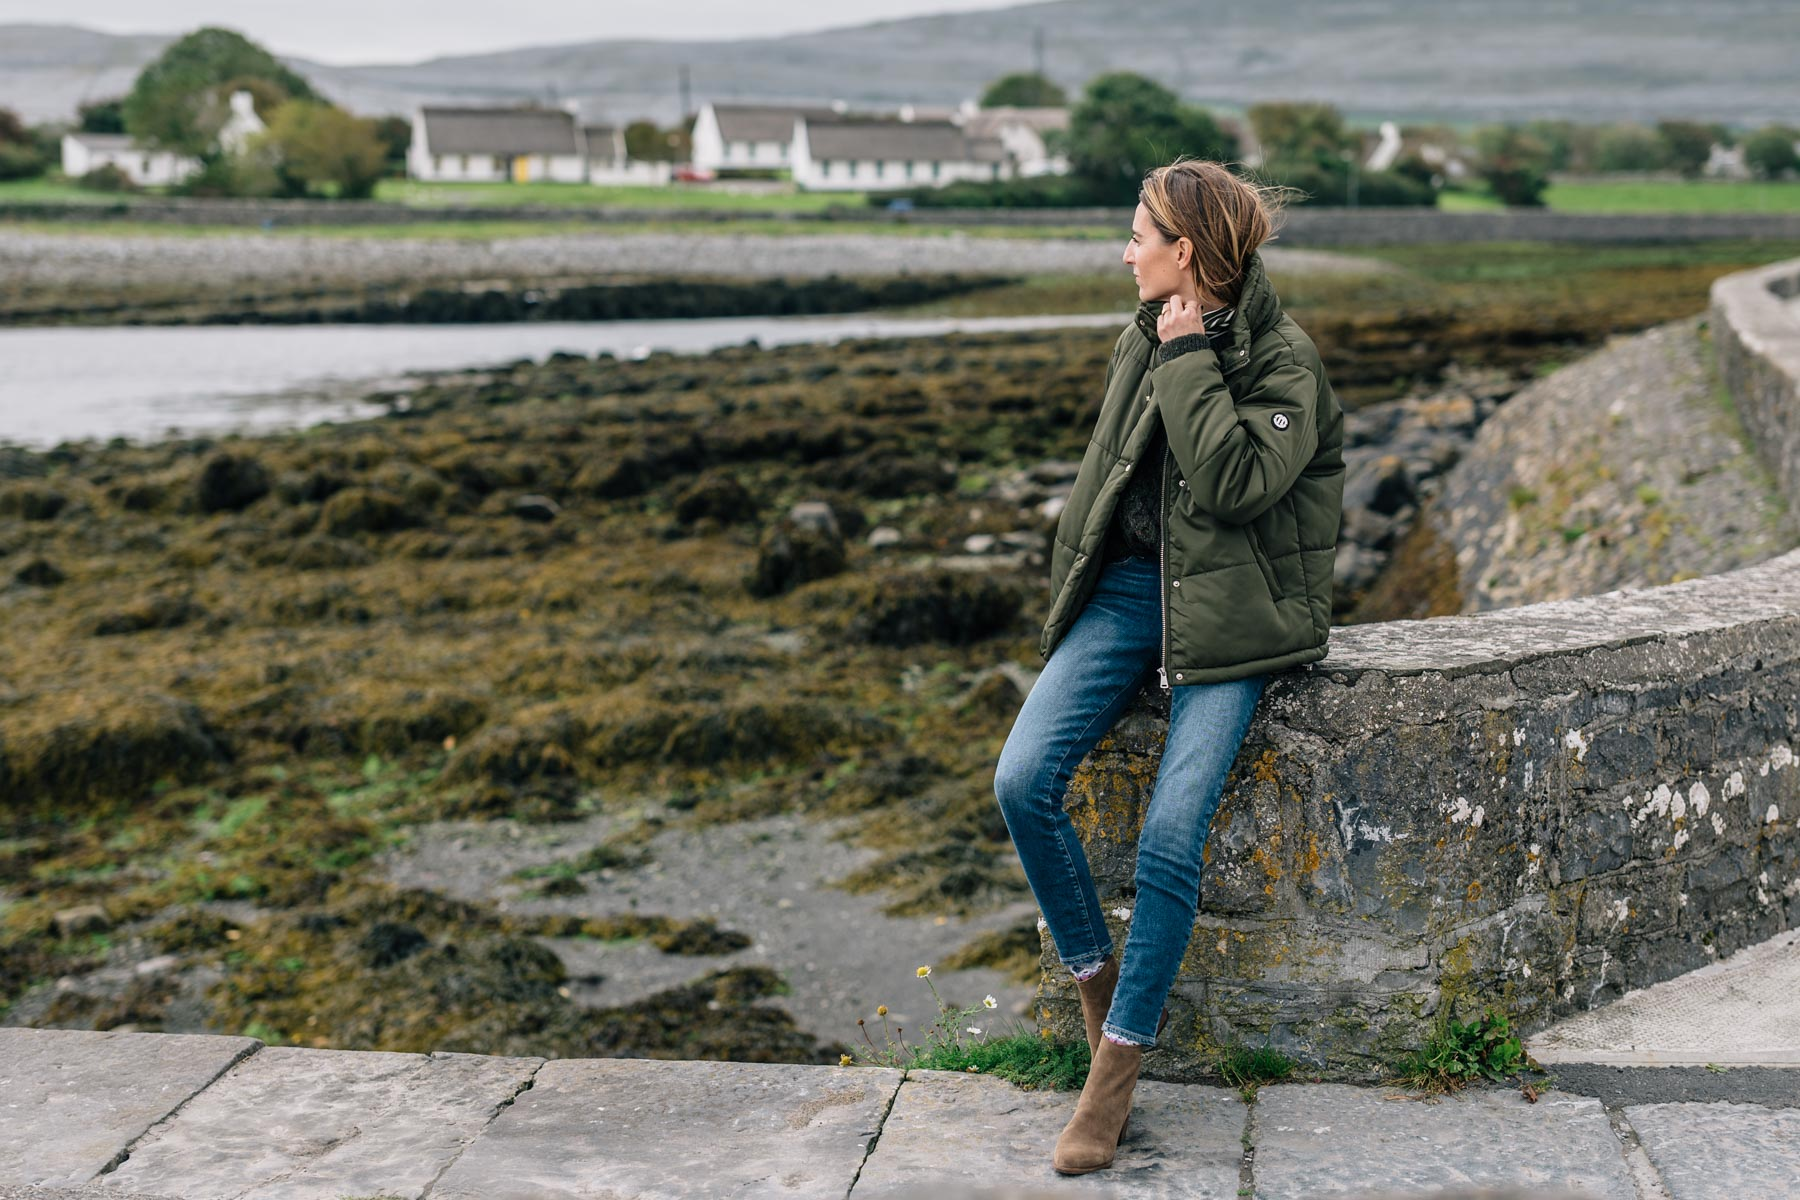 Jess Ann Kirby in Ballyvaughan during a Wild Atlantic Way road trip